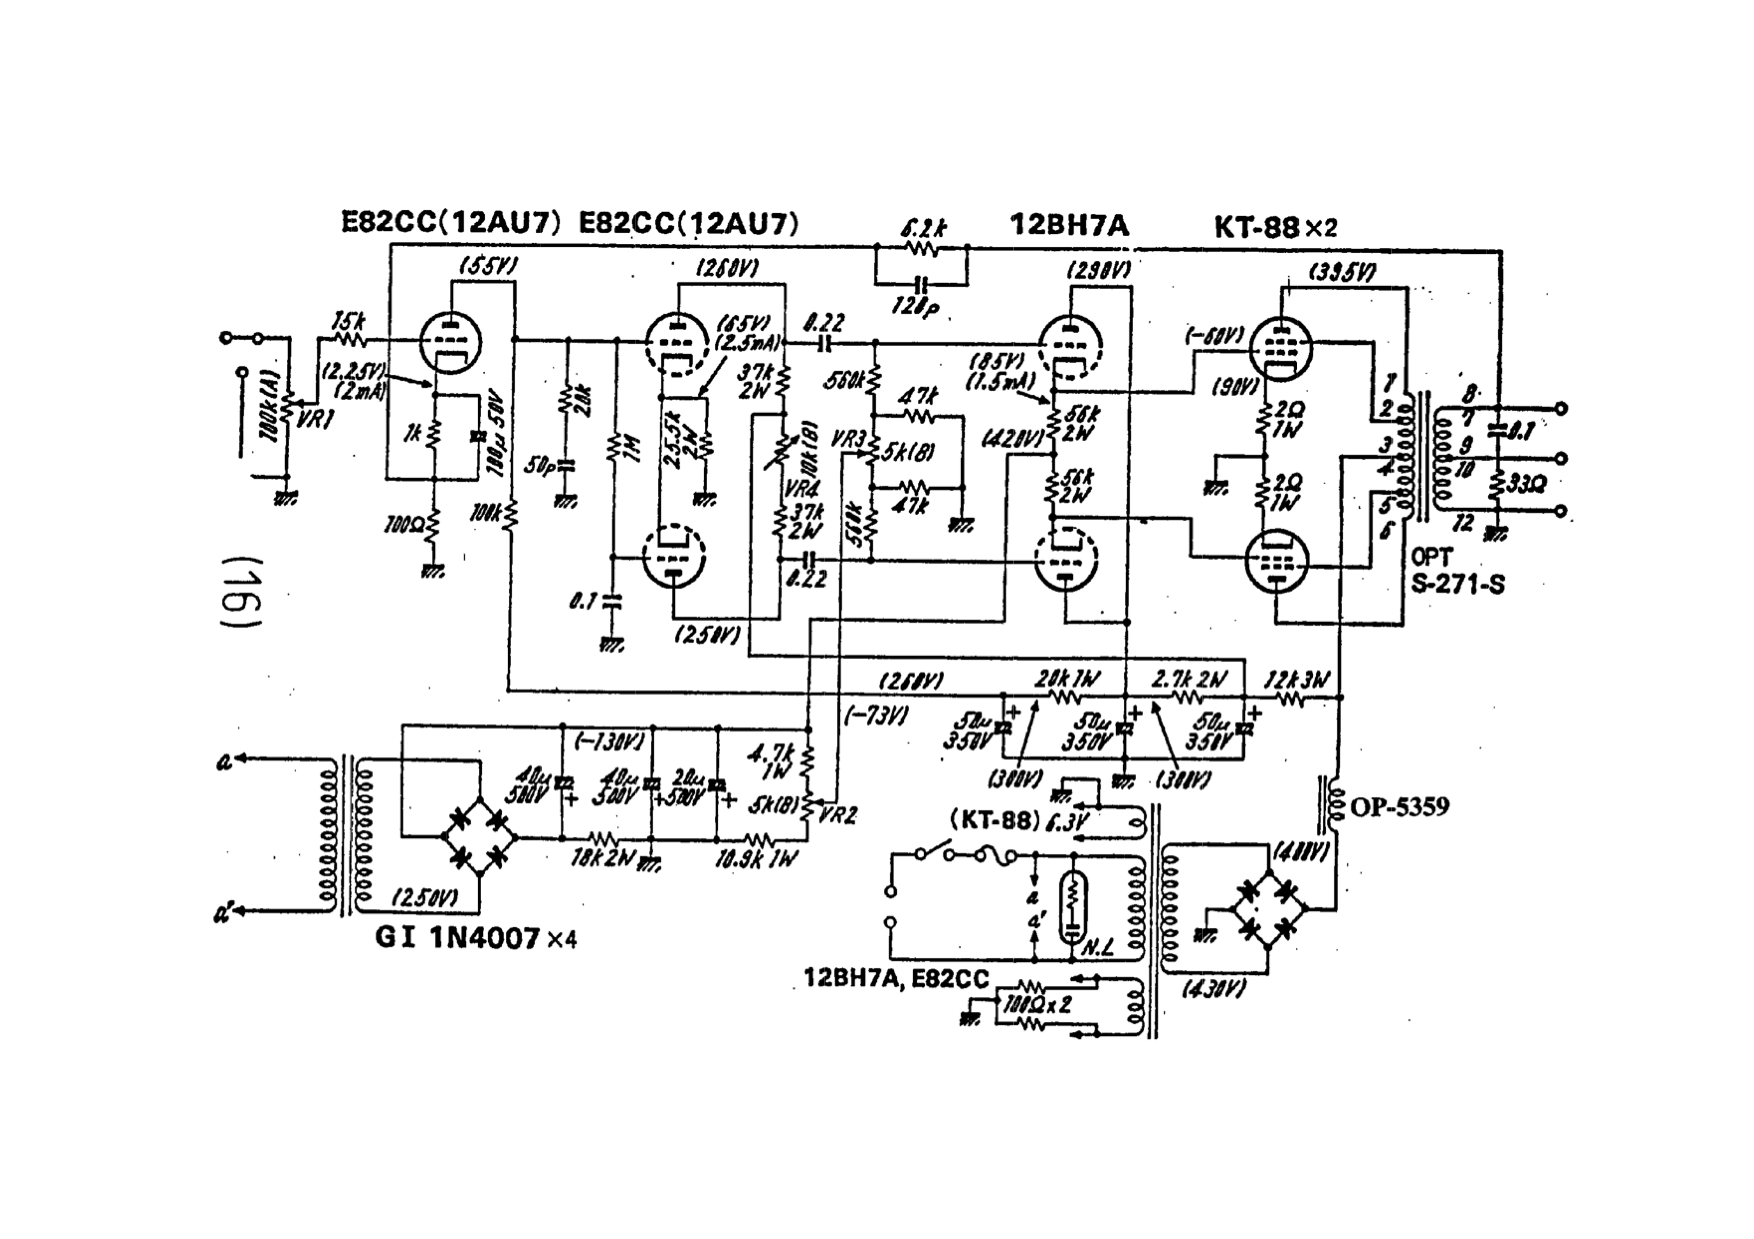 Incredible Tube Amp Schematics Basic Electronics Wiring Diagram Wiring Cloud Oideiuggs Outletorg